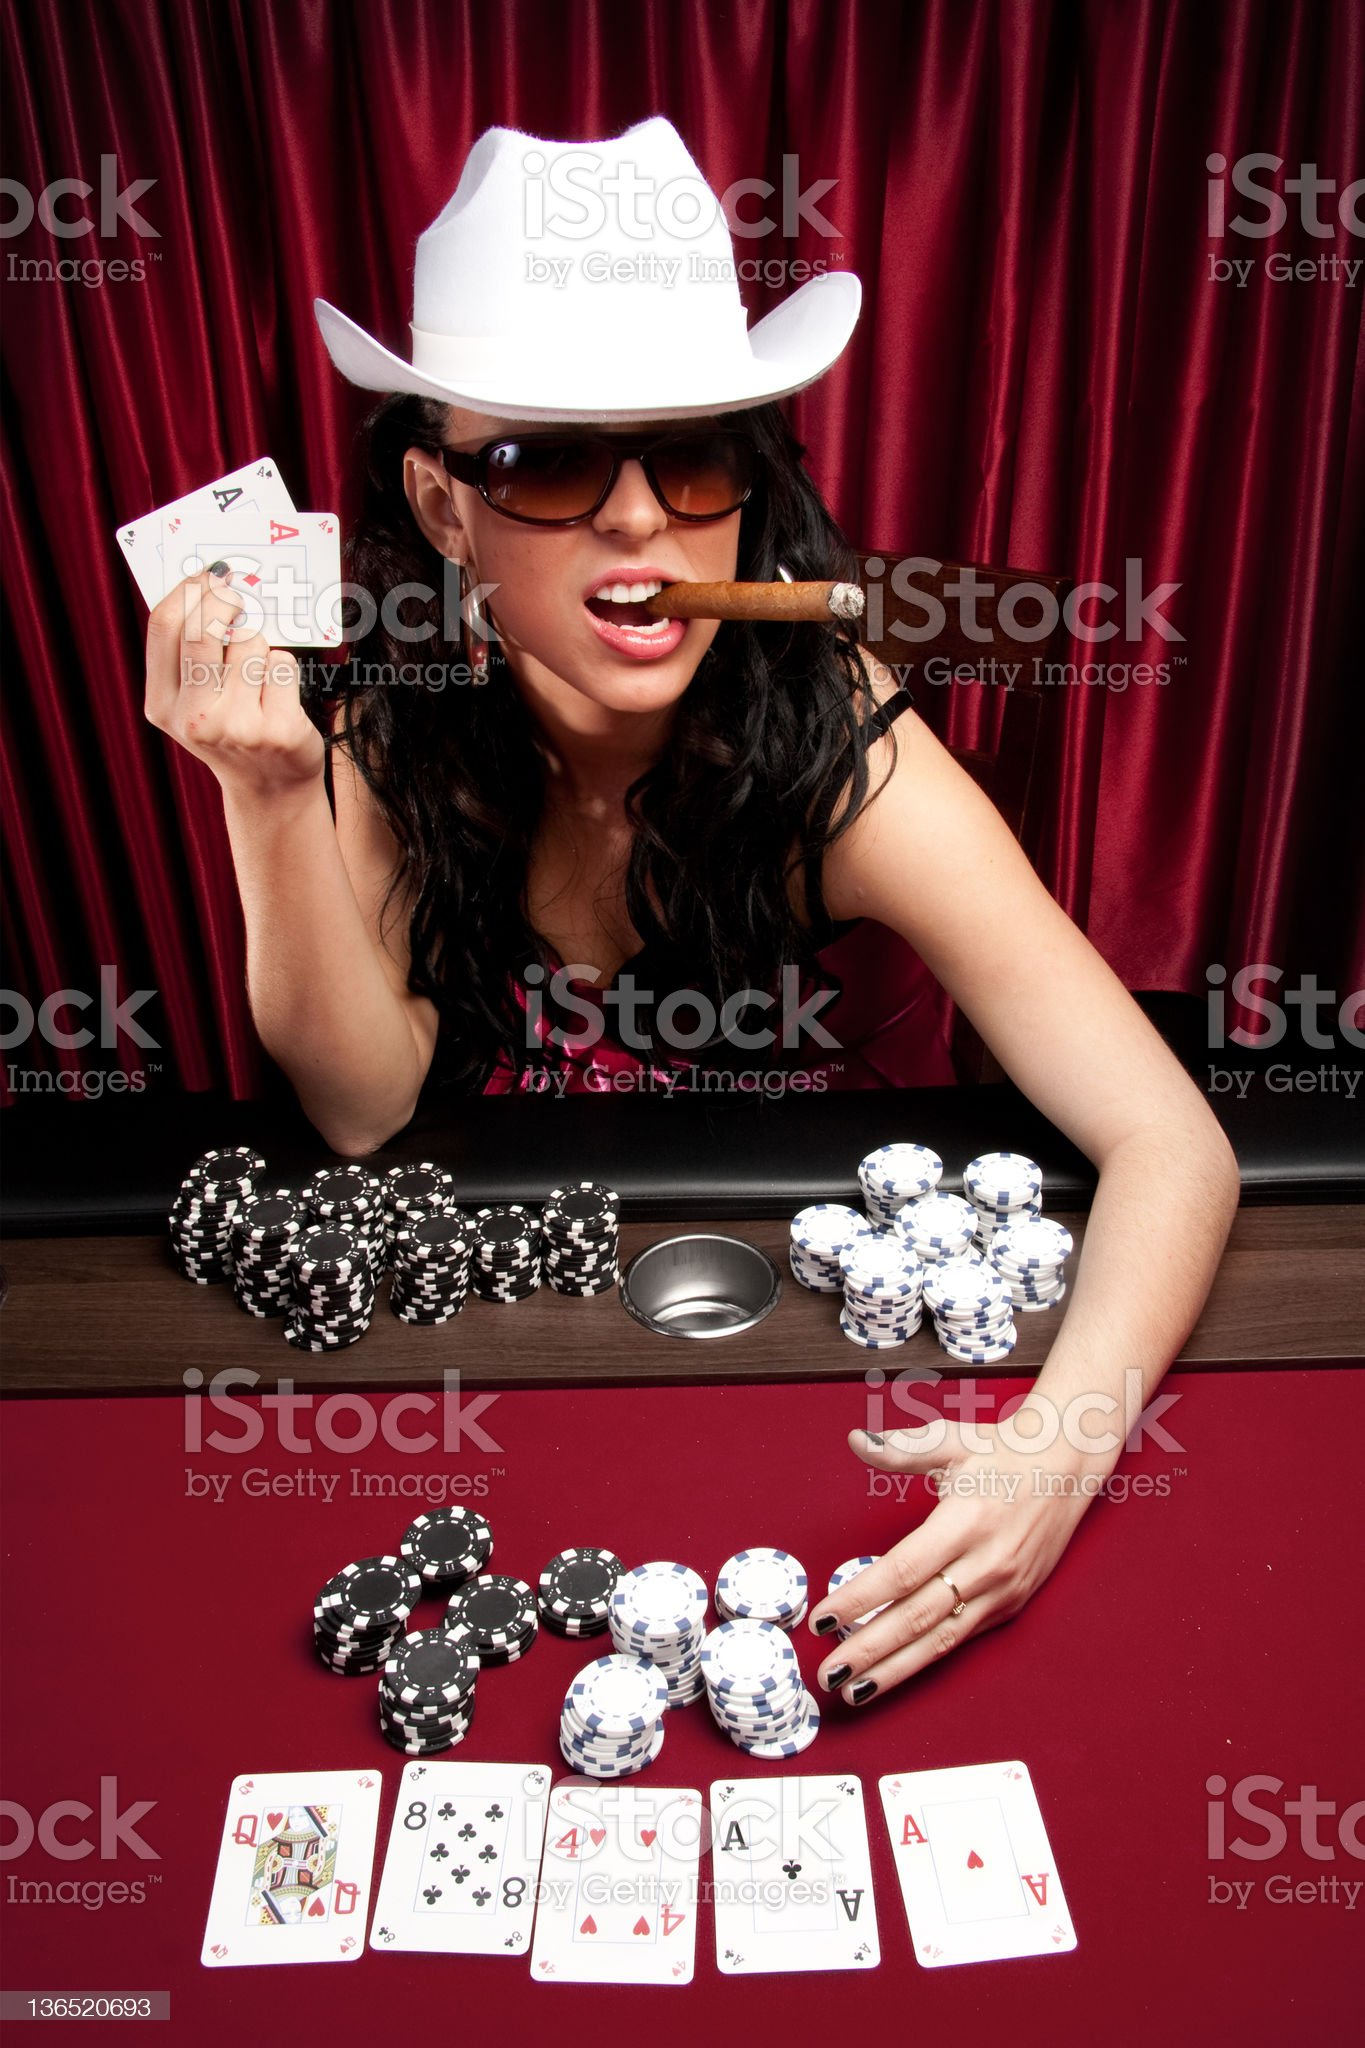 Poker diva hauling the chips royalty-free stock photo